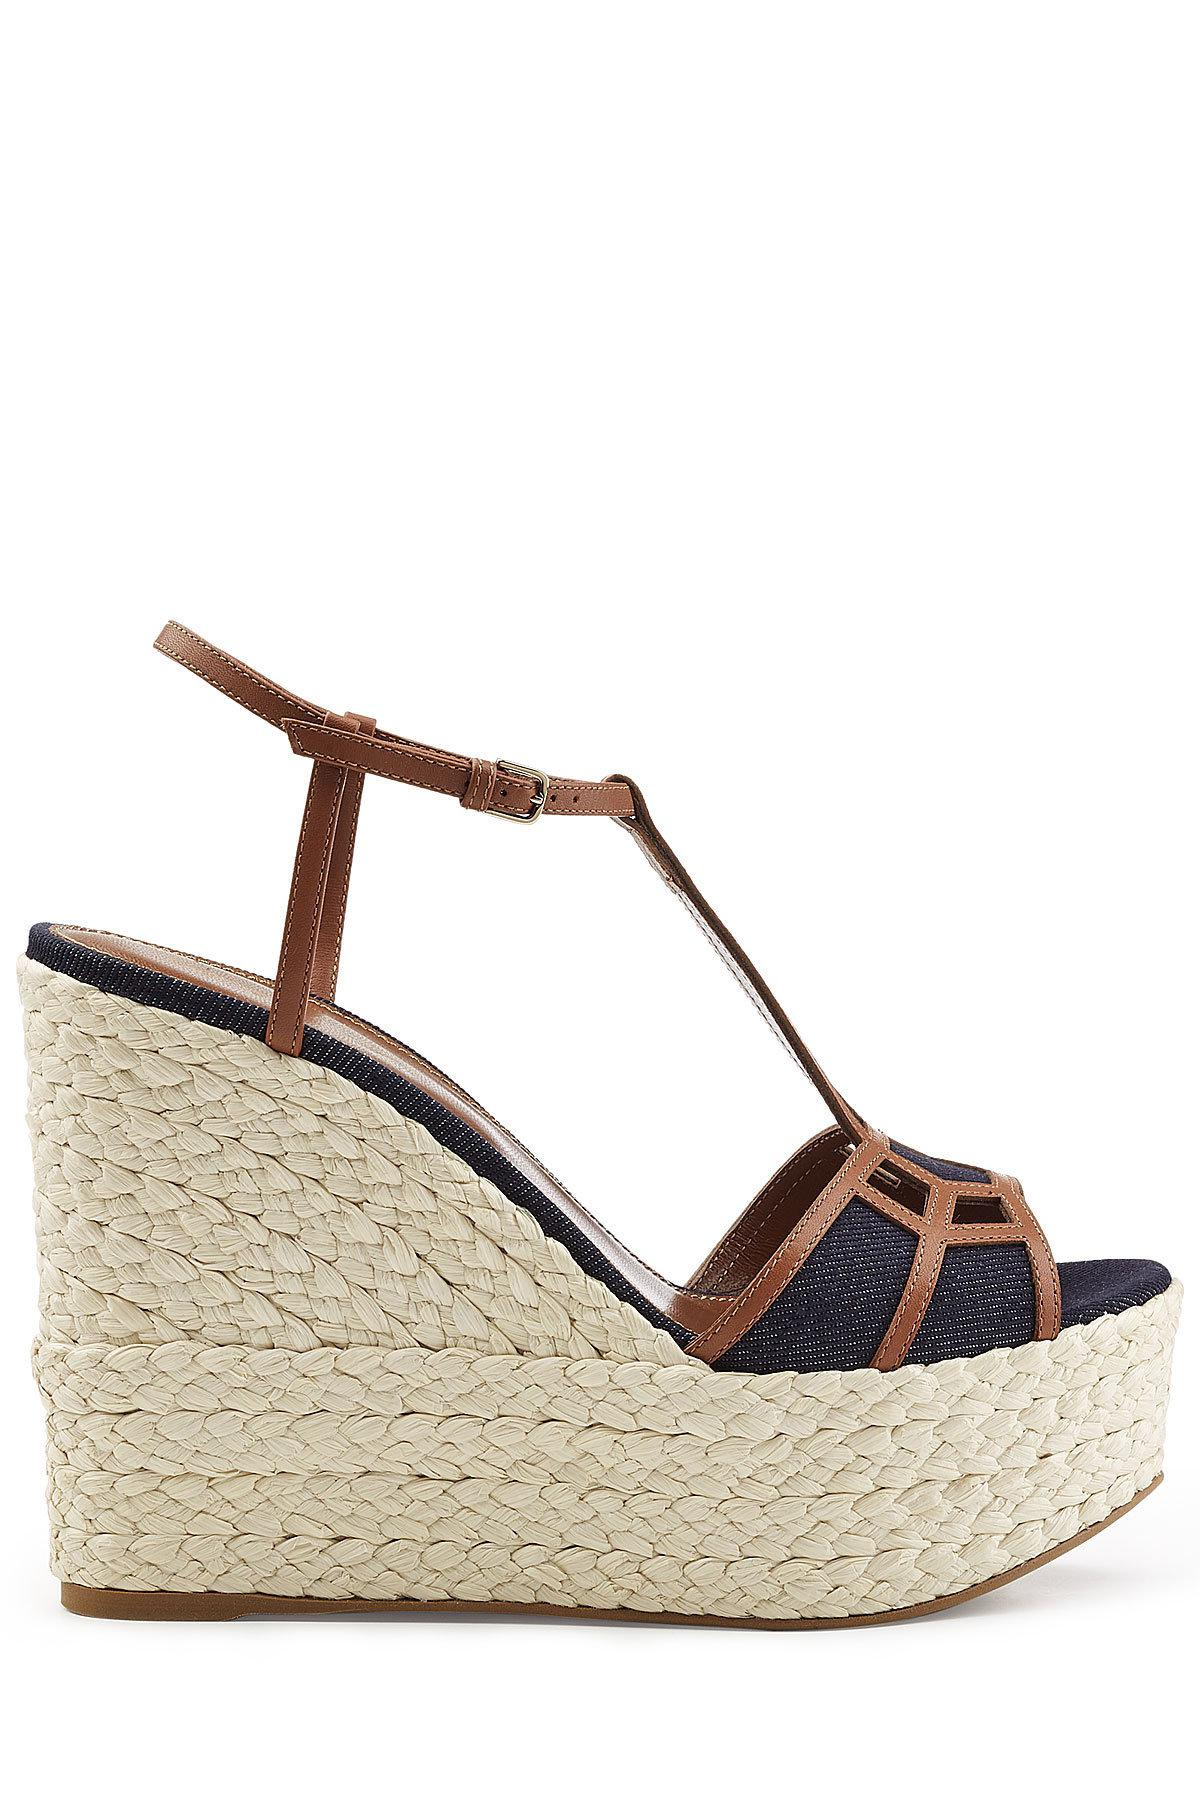 Sergio Rossi Leather and Denim Wedge Sandals Cheap Best Store To Get Buy Cheap Huge Surprise Discount Footlocker Cheap Price Discount Authentic CEMkCnsw